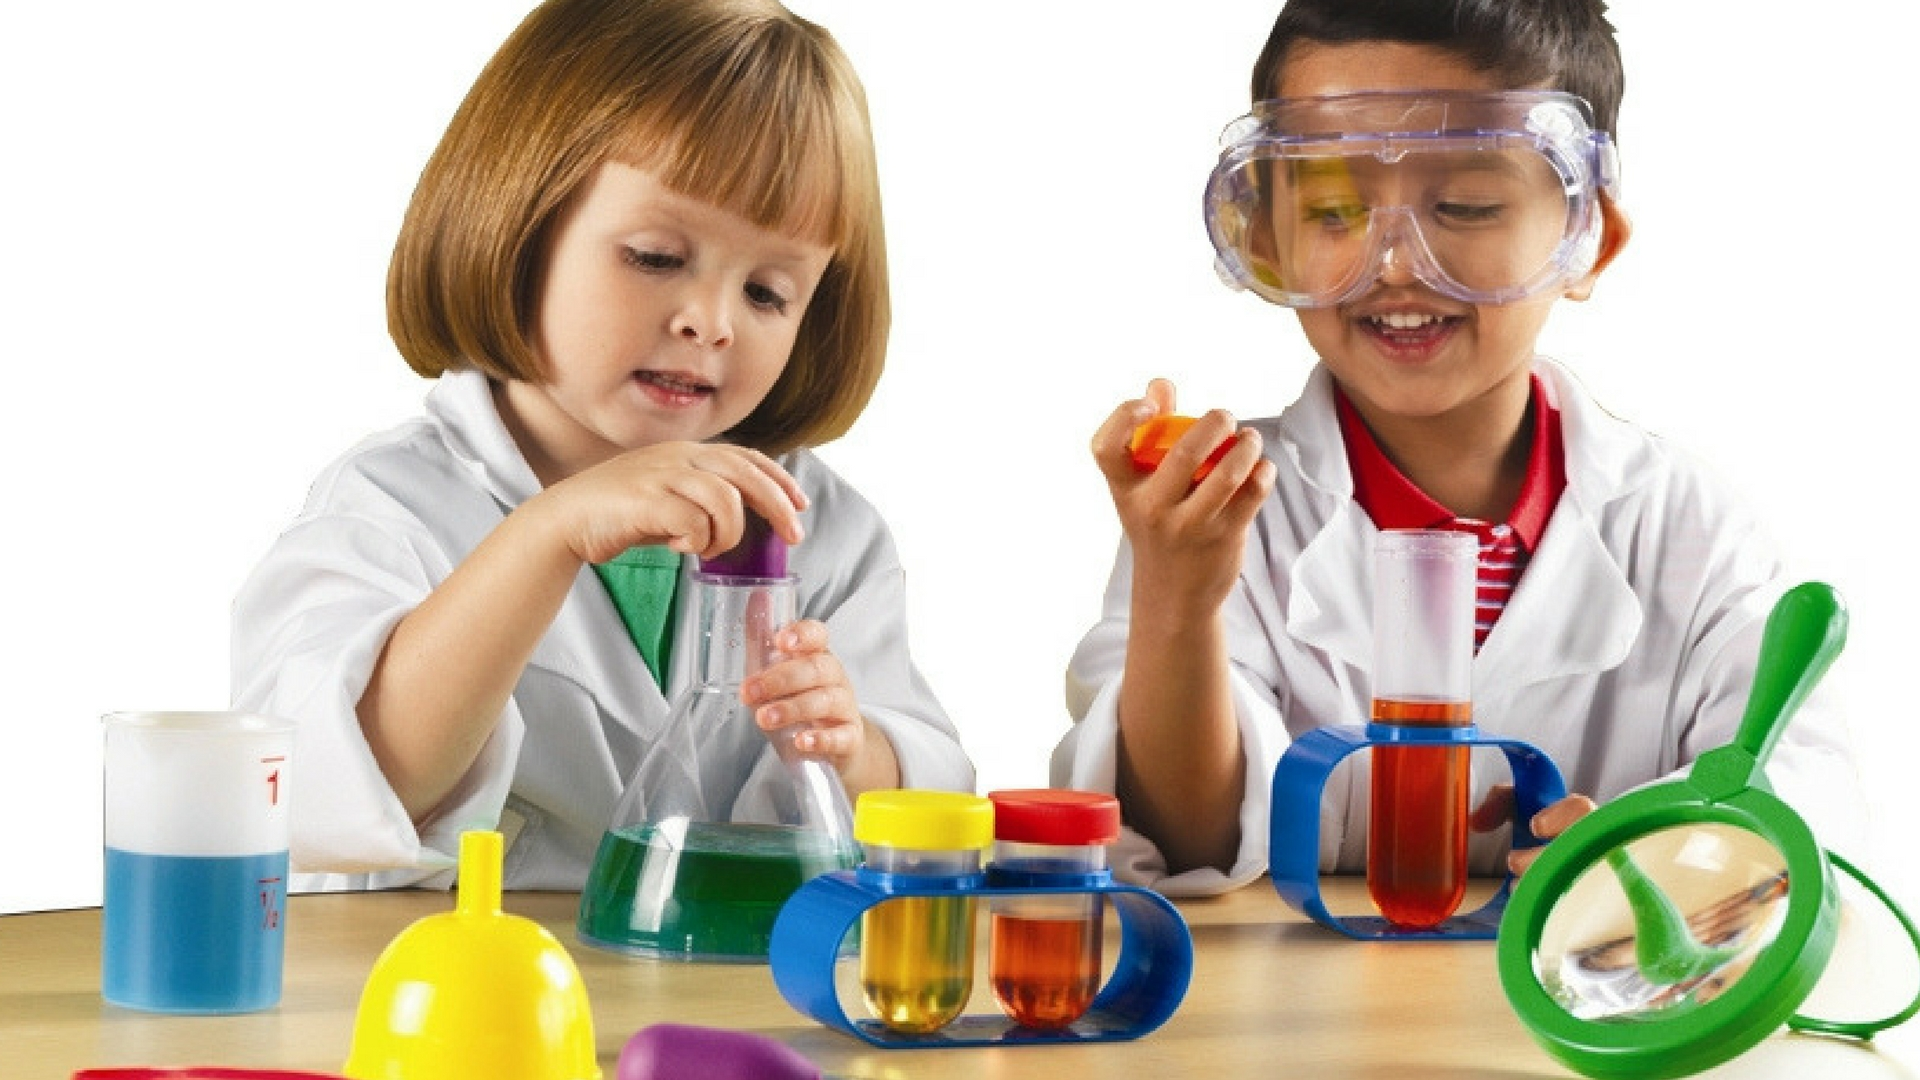 Pictures of children doing science